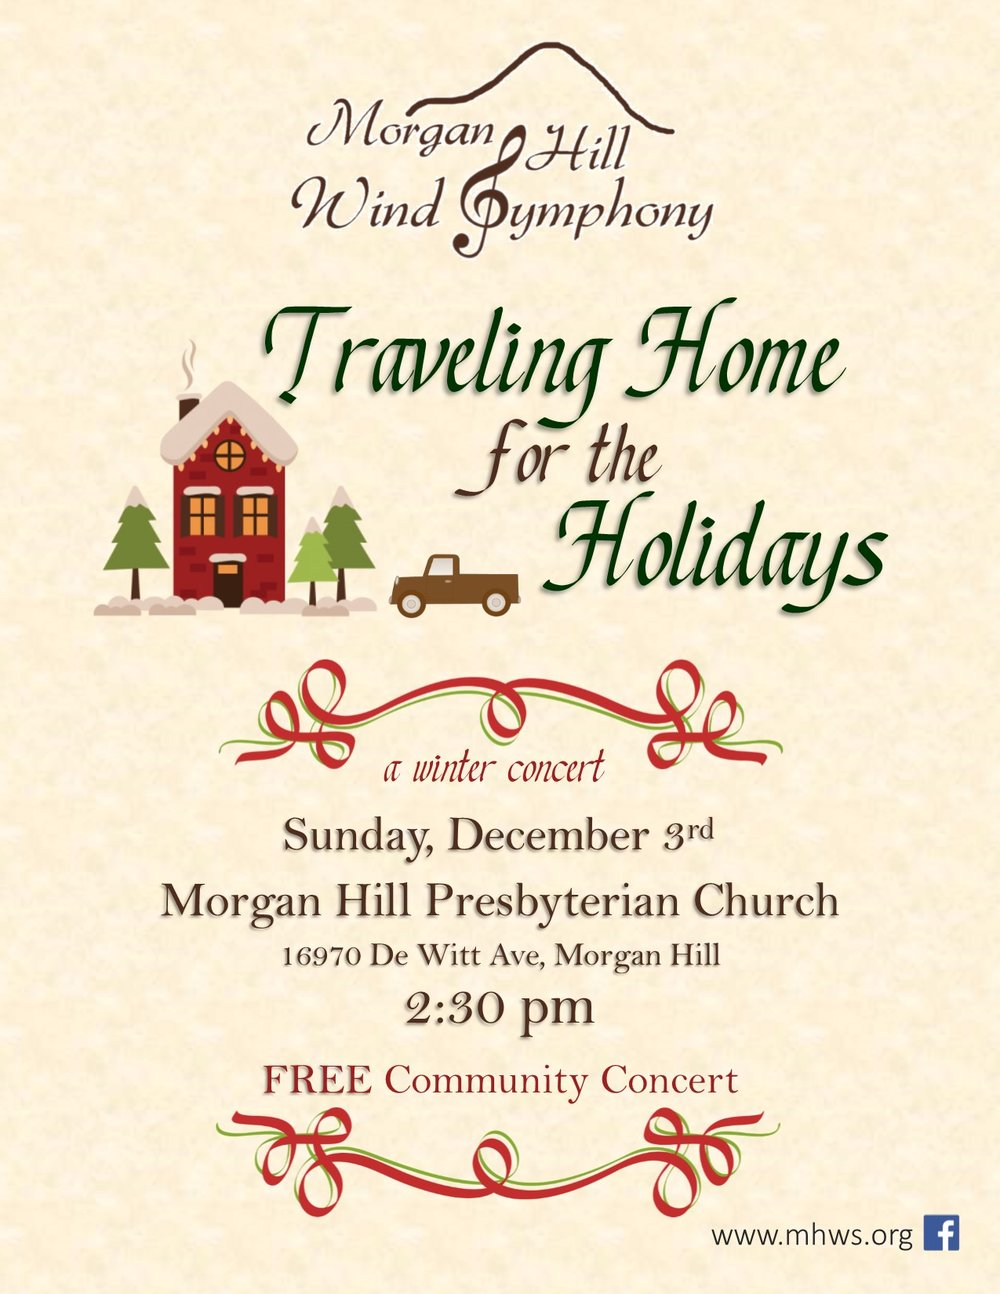 Traveling Homefor the Holidays - Sunday, December 3rd, 2017 at 2:30 PMMorgan Hill Presbyterian Church16970 De Witt Ave, Morgan Hill